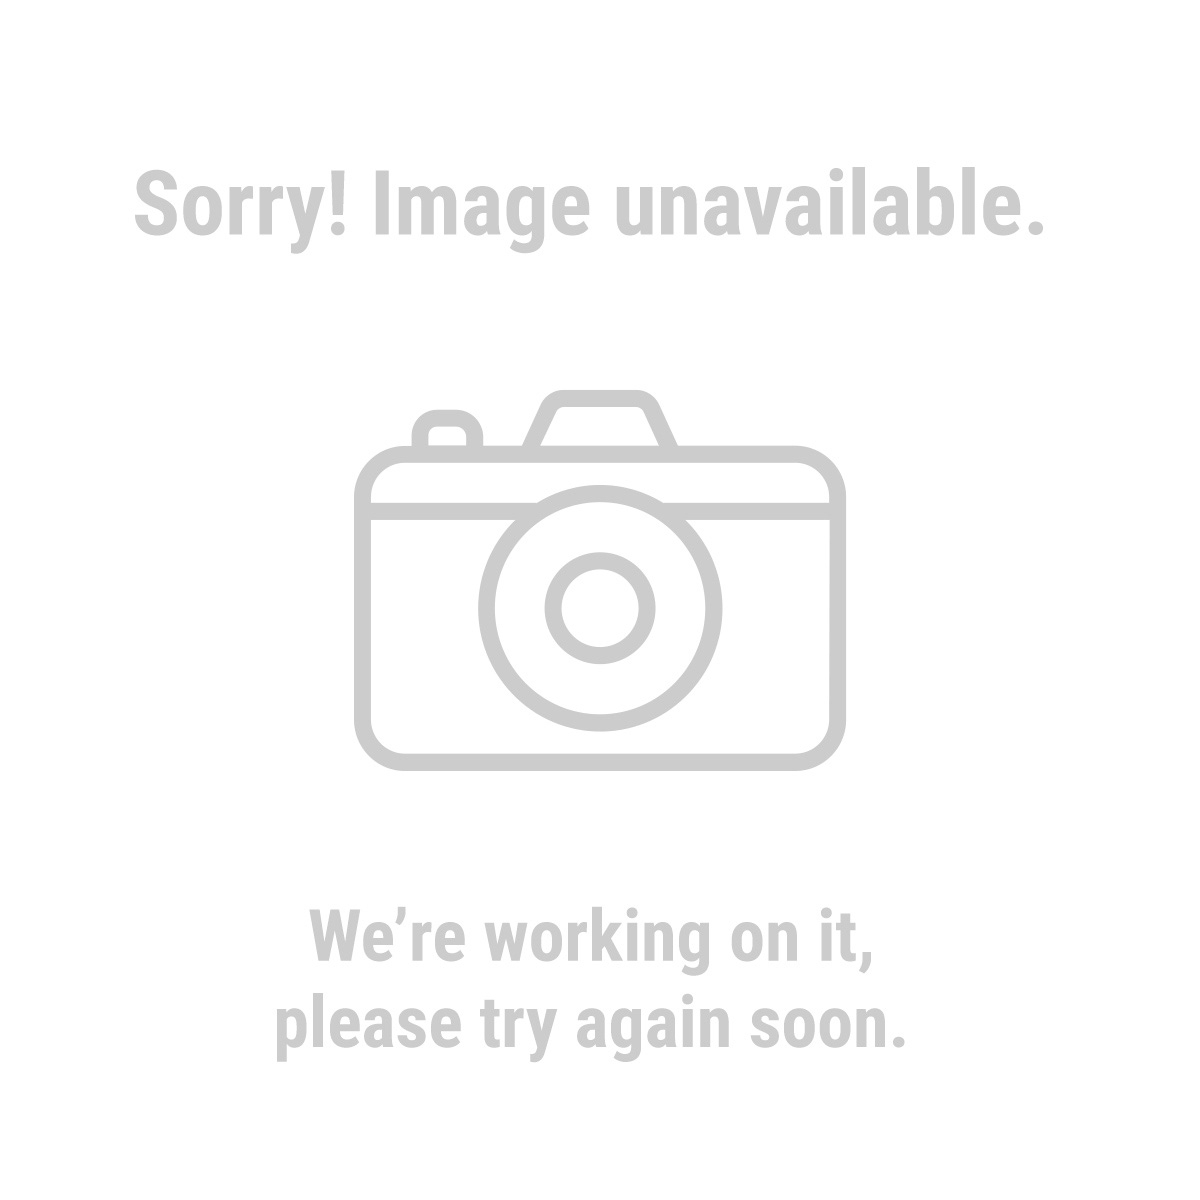 Drill Master 5947 20 Piece Titanium Nitride Coated End Mill Set